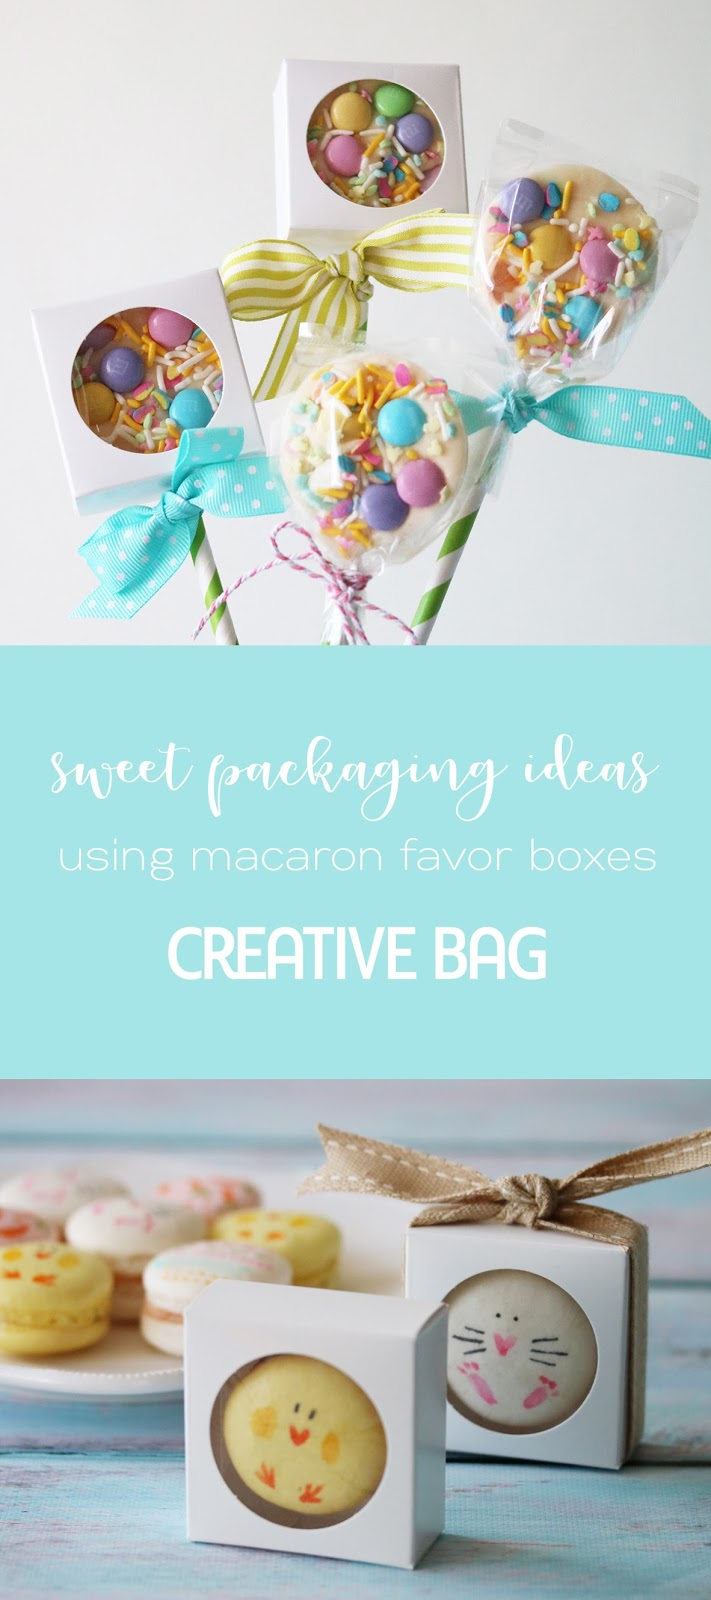 sweet packaging ideas using macaron boxes | Creative Bag